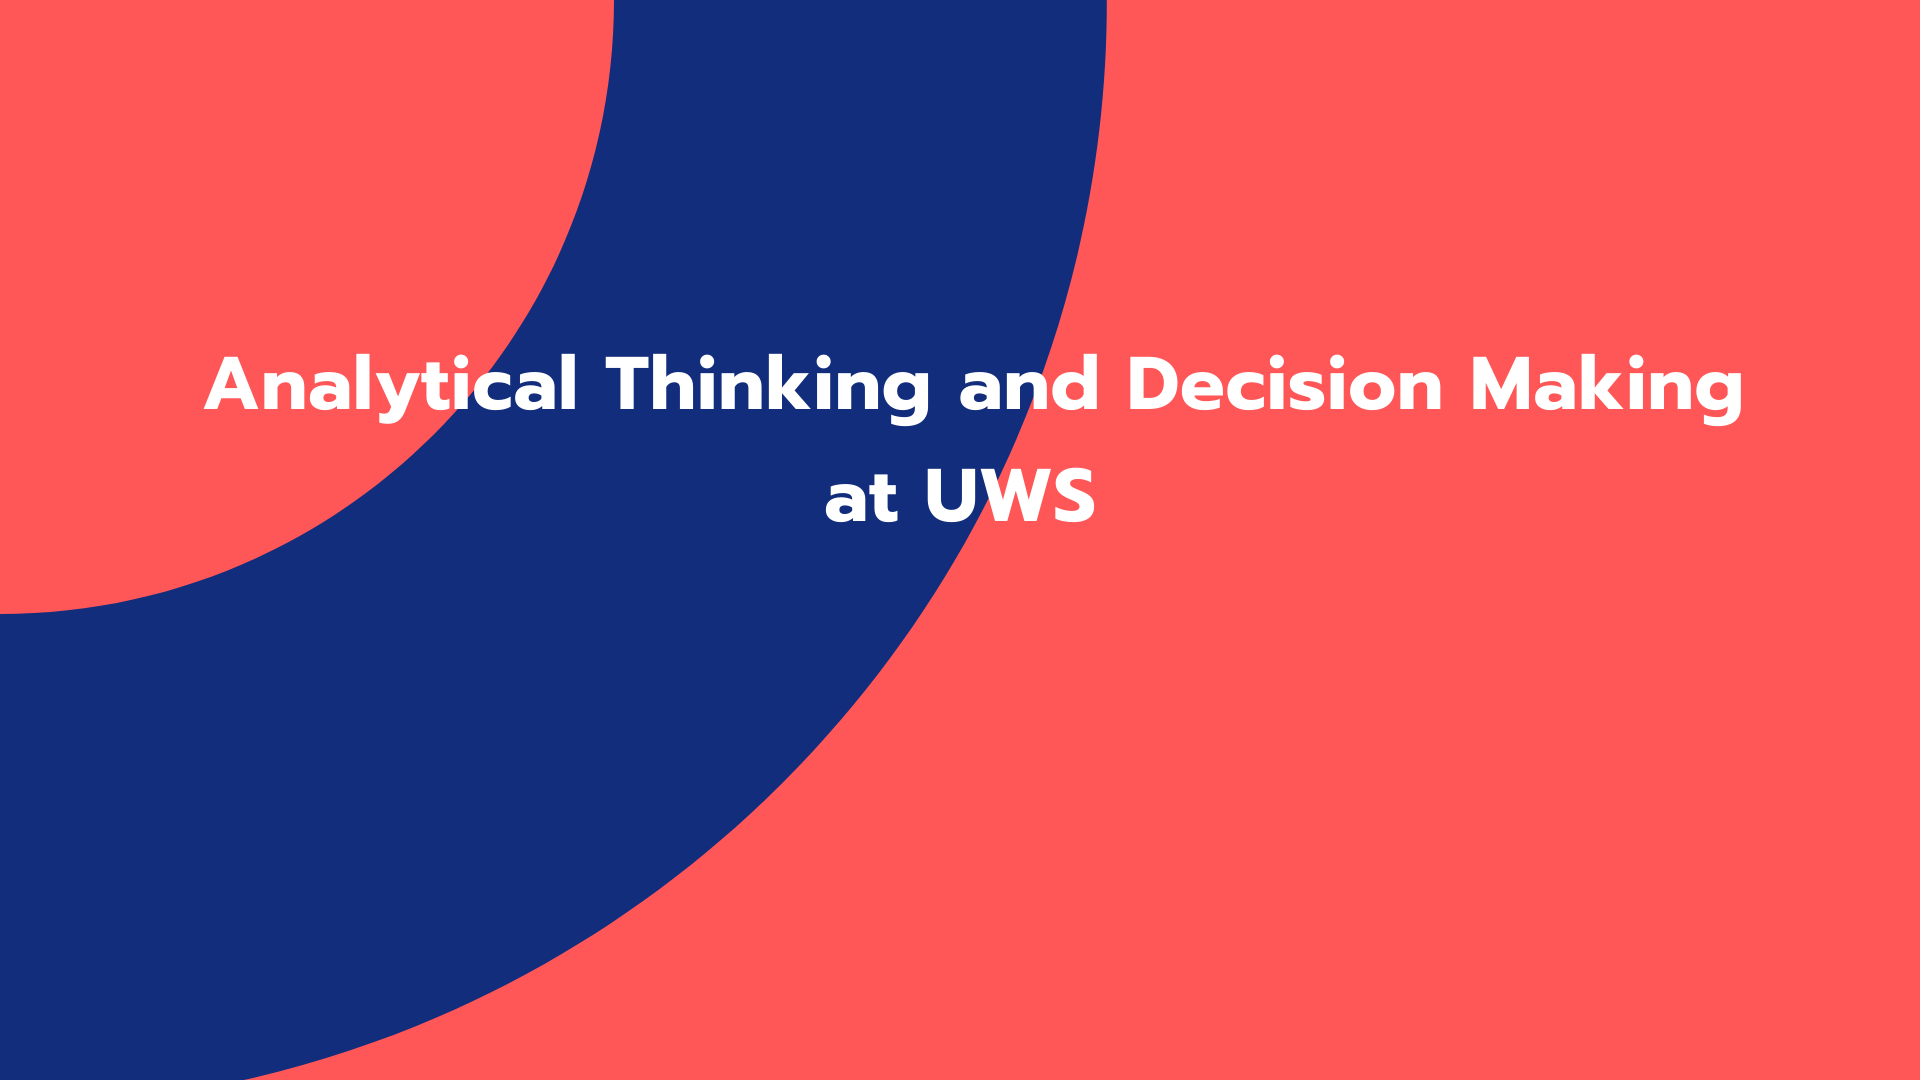 Analytical Thinking and Decision Making at UWS